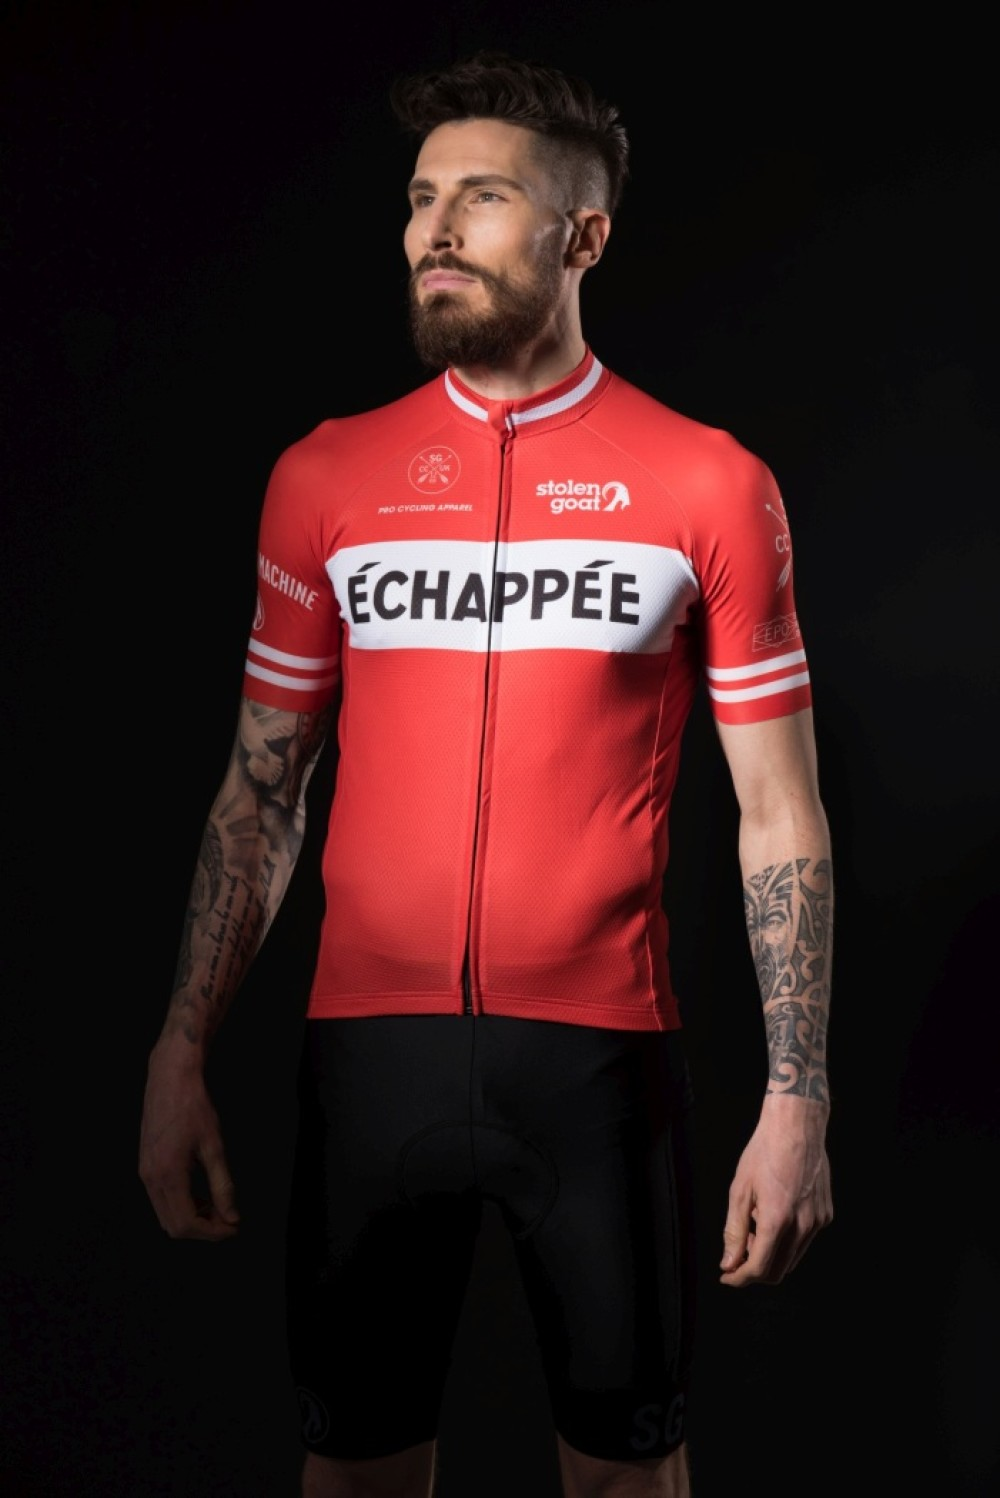 Stolen Goat Men s Limited Edition – Echappee Red Cycling Jersey 78ebf959e